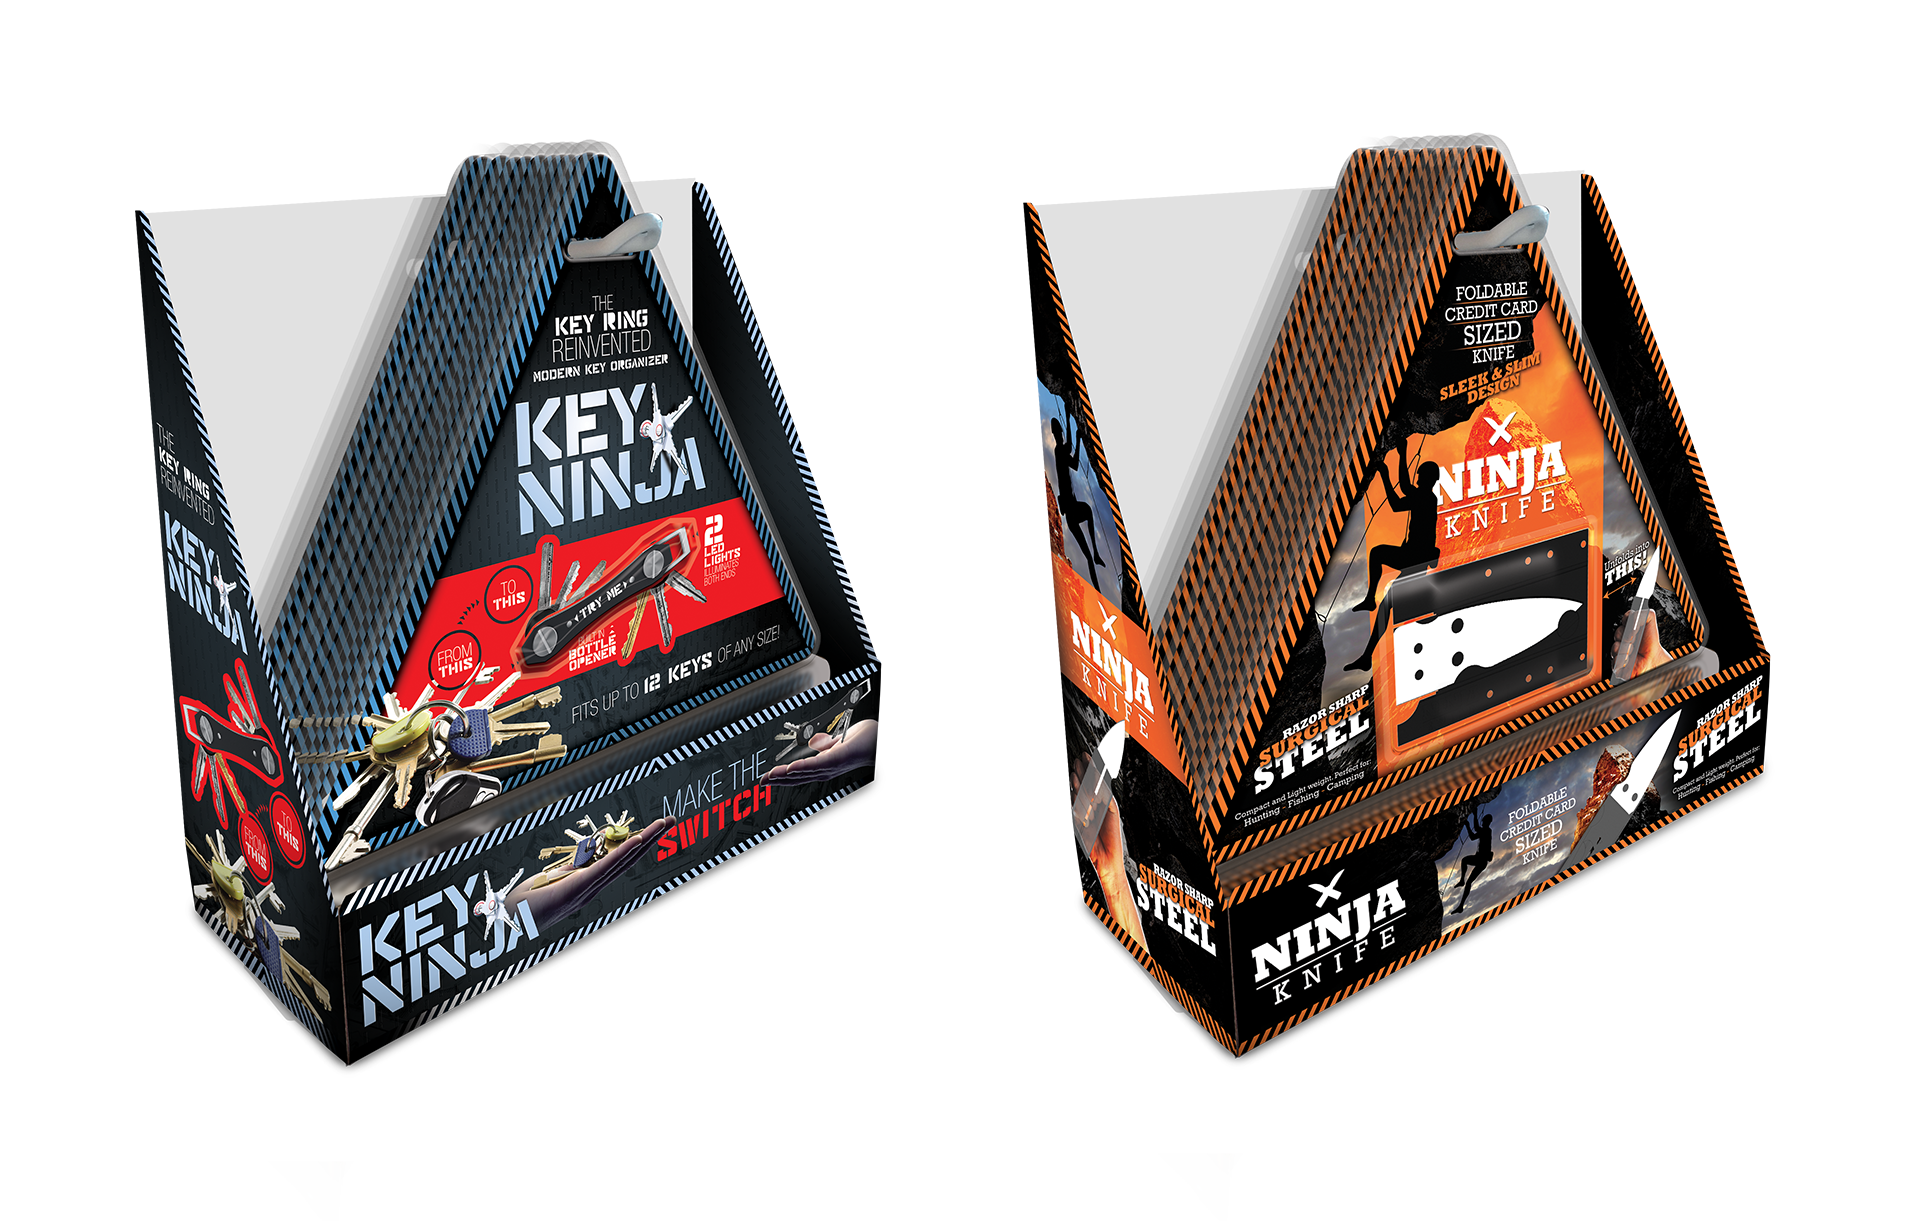 Wallet Ninja Key Ninja and Ninja Knife Product Packaging Design by Scott Luscombe of Creatibly